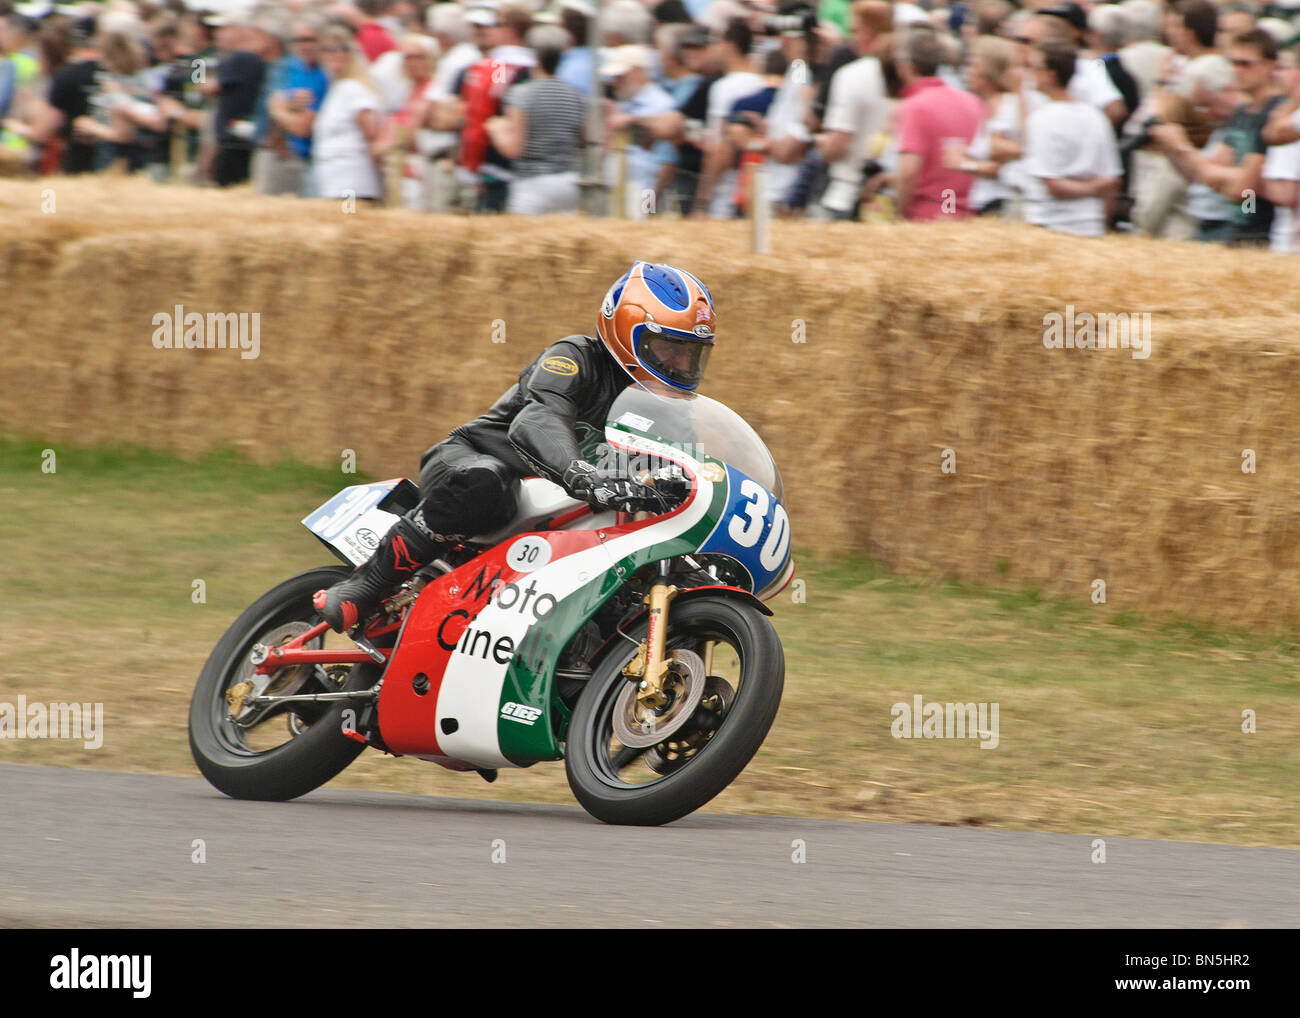 A Motorcycle Climbs The Hill At The Goodwood Festival Of Speed 2010   Stock  Image